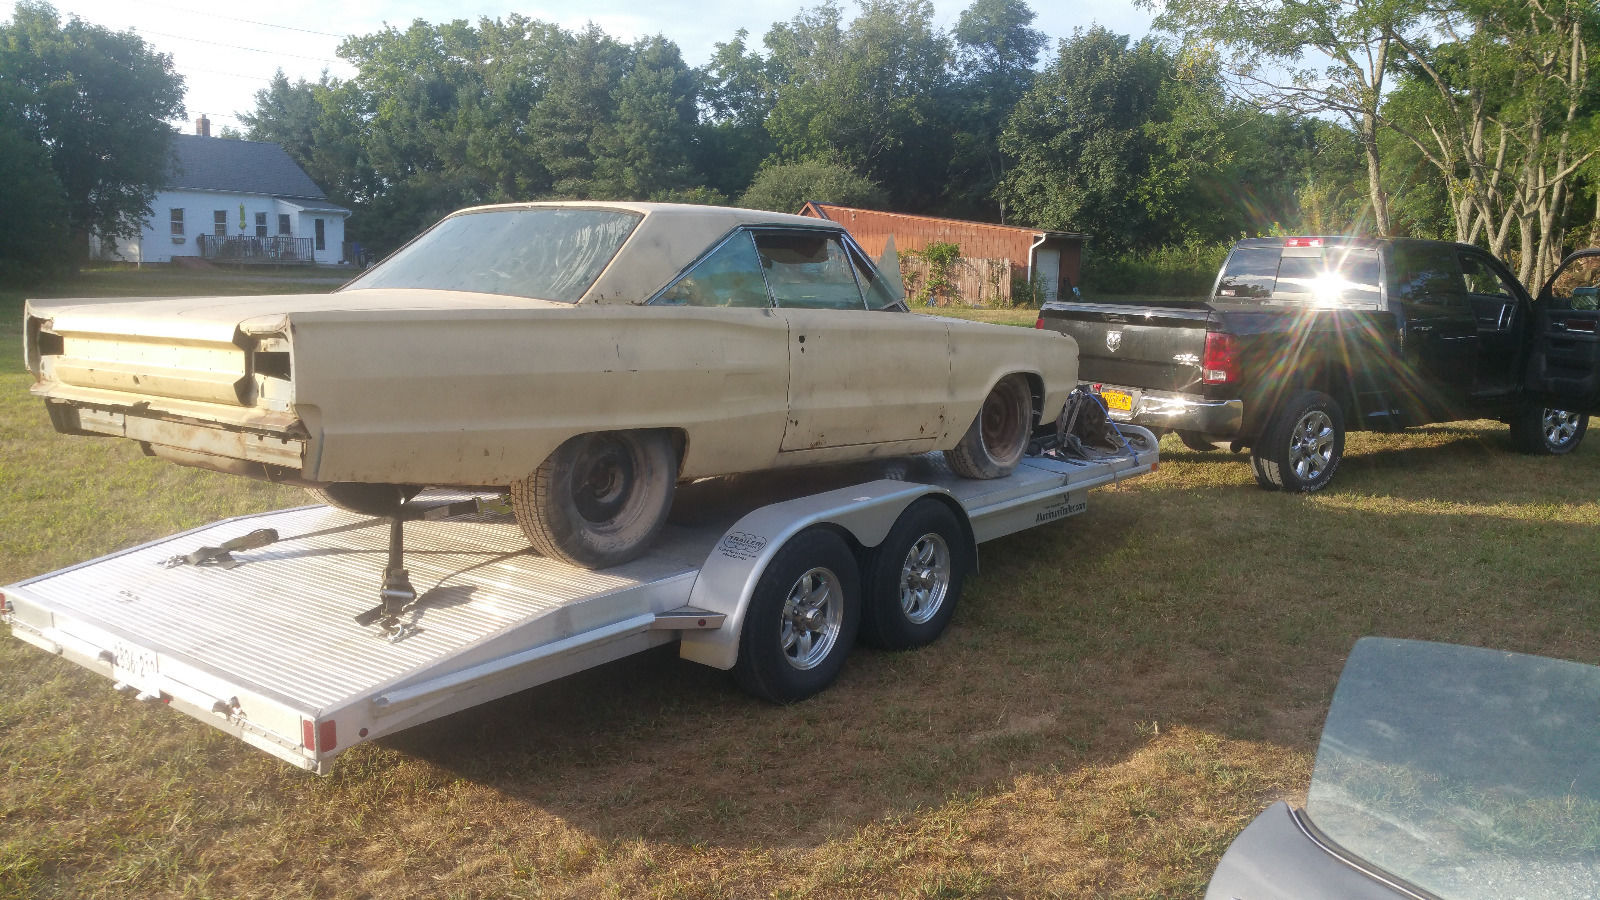 1970 Dodge Charger Rt Project Car Overall Solid Car For Sale: One Year Only Model 1967 Dodge Coronet R/T RARE Project